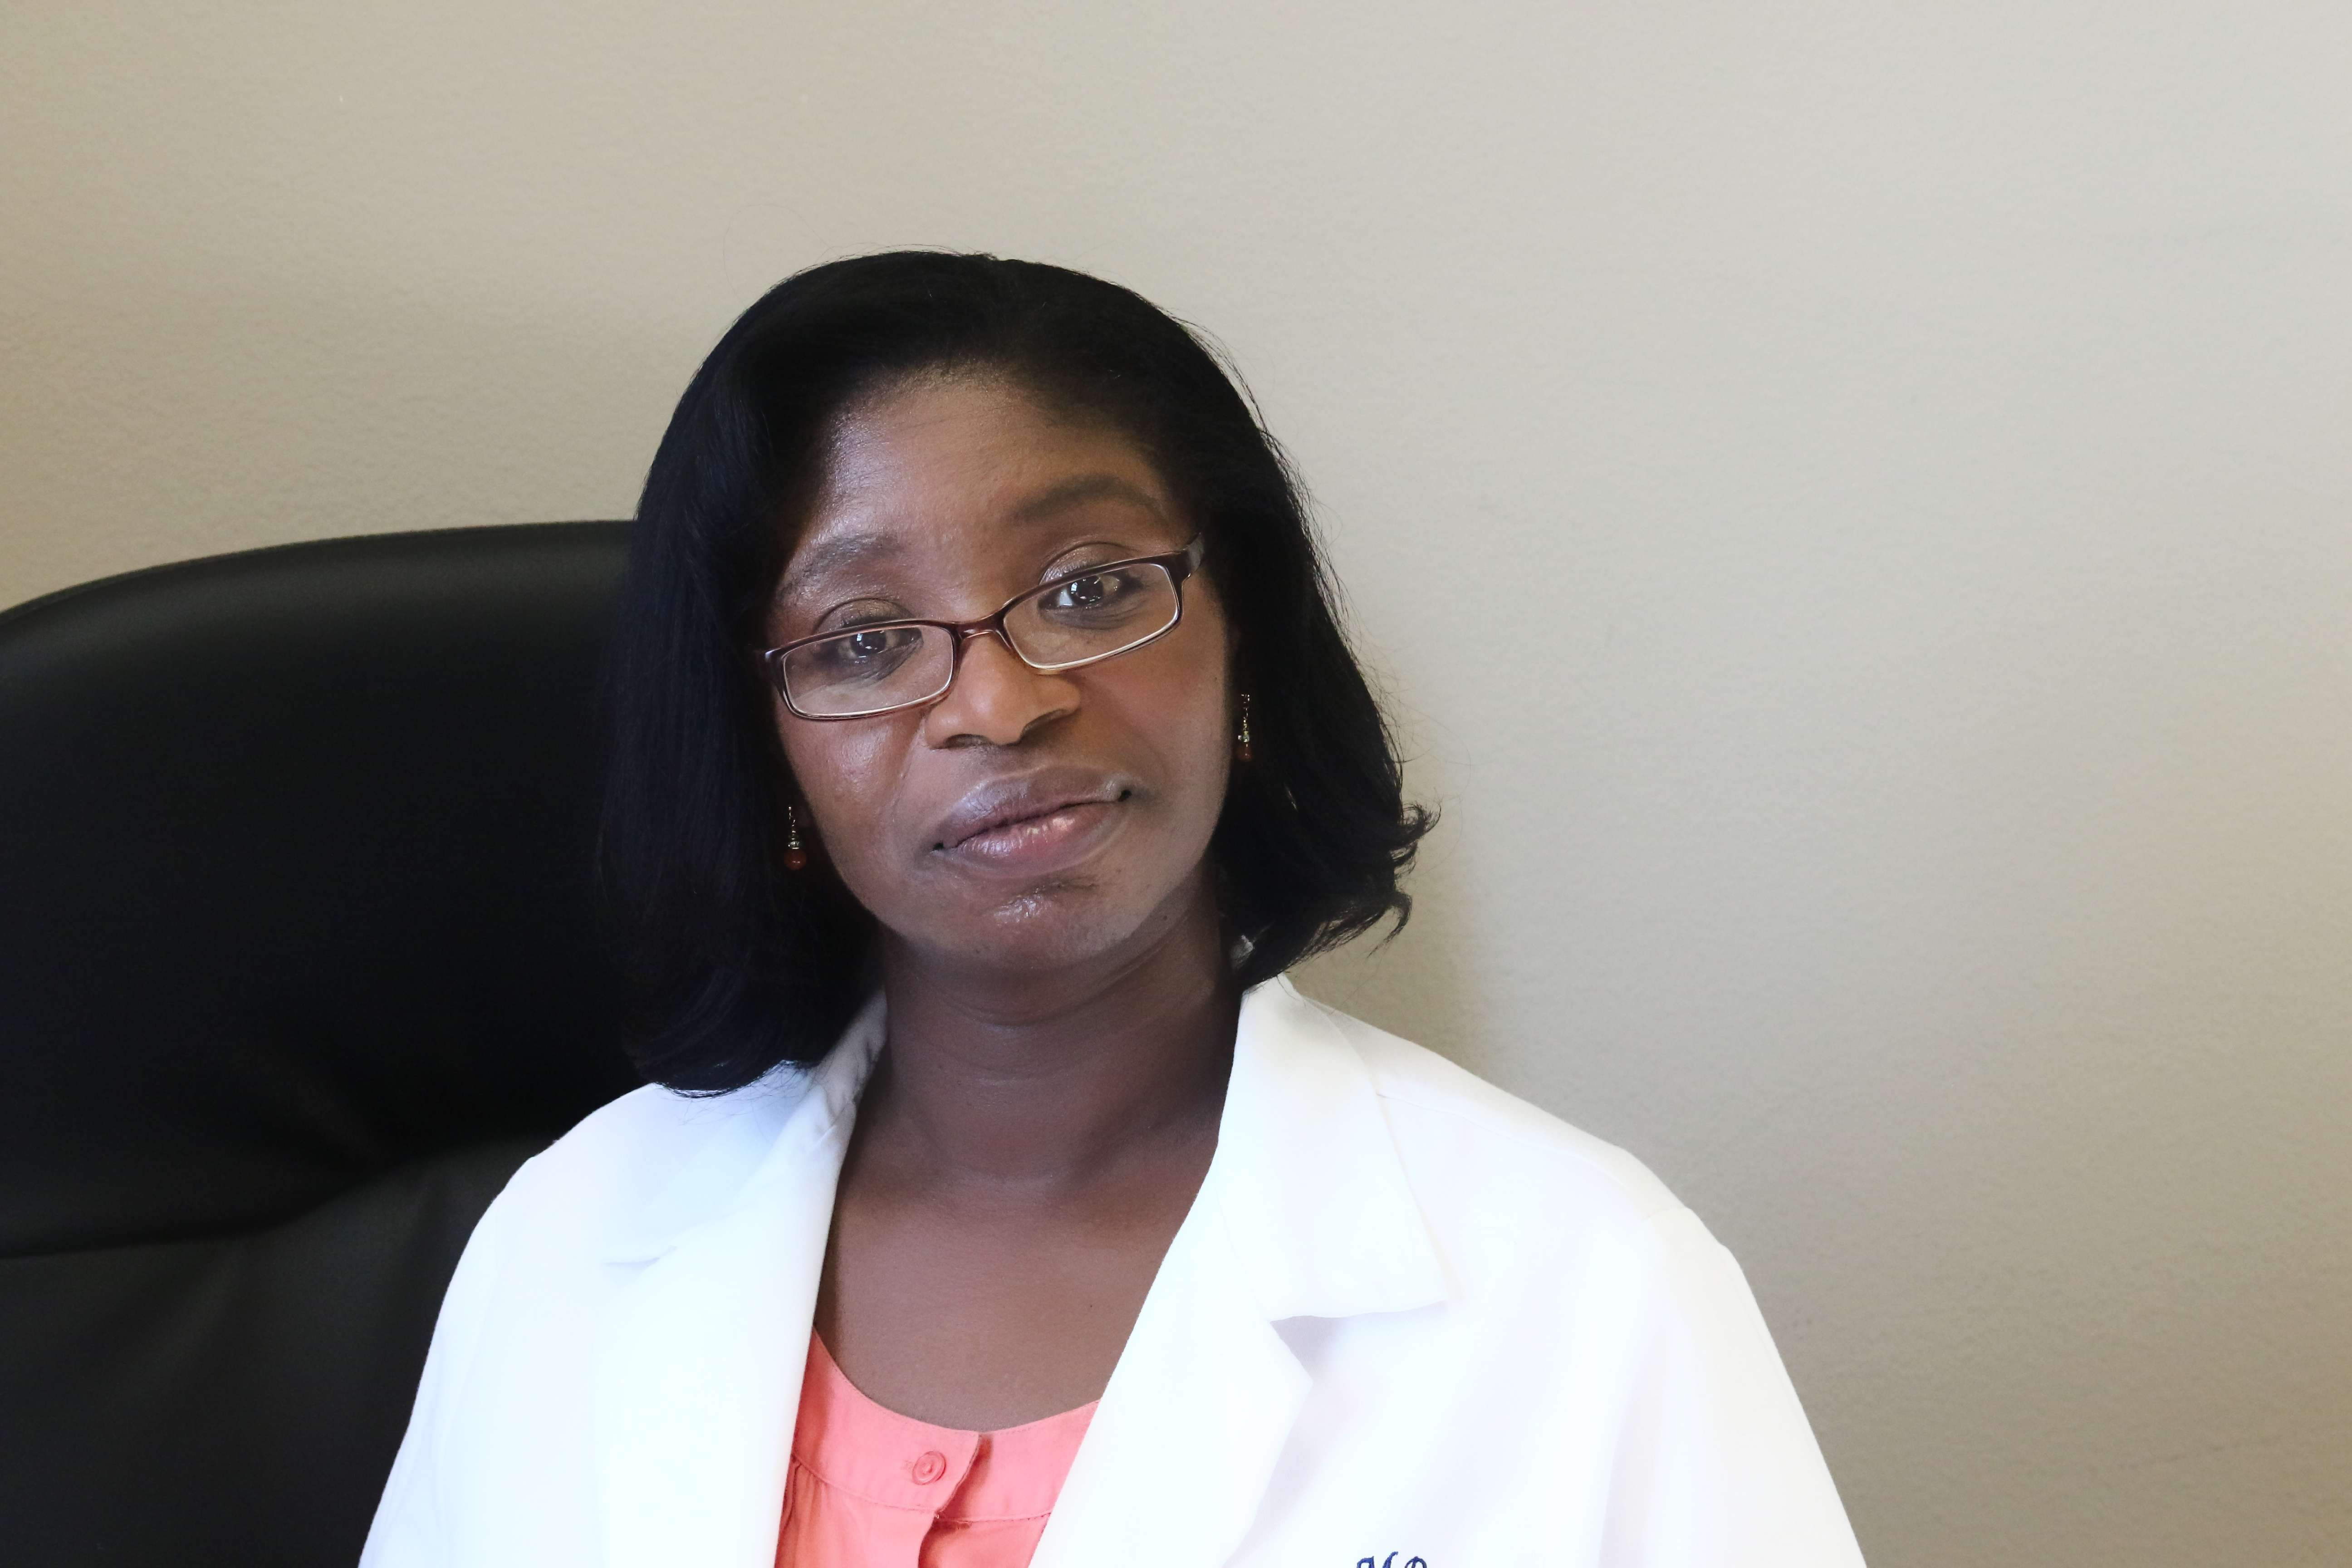 Dr. Lucia Gilling, MD